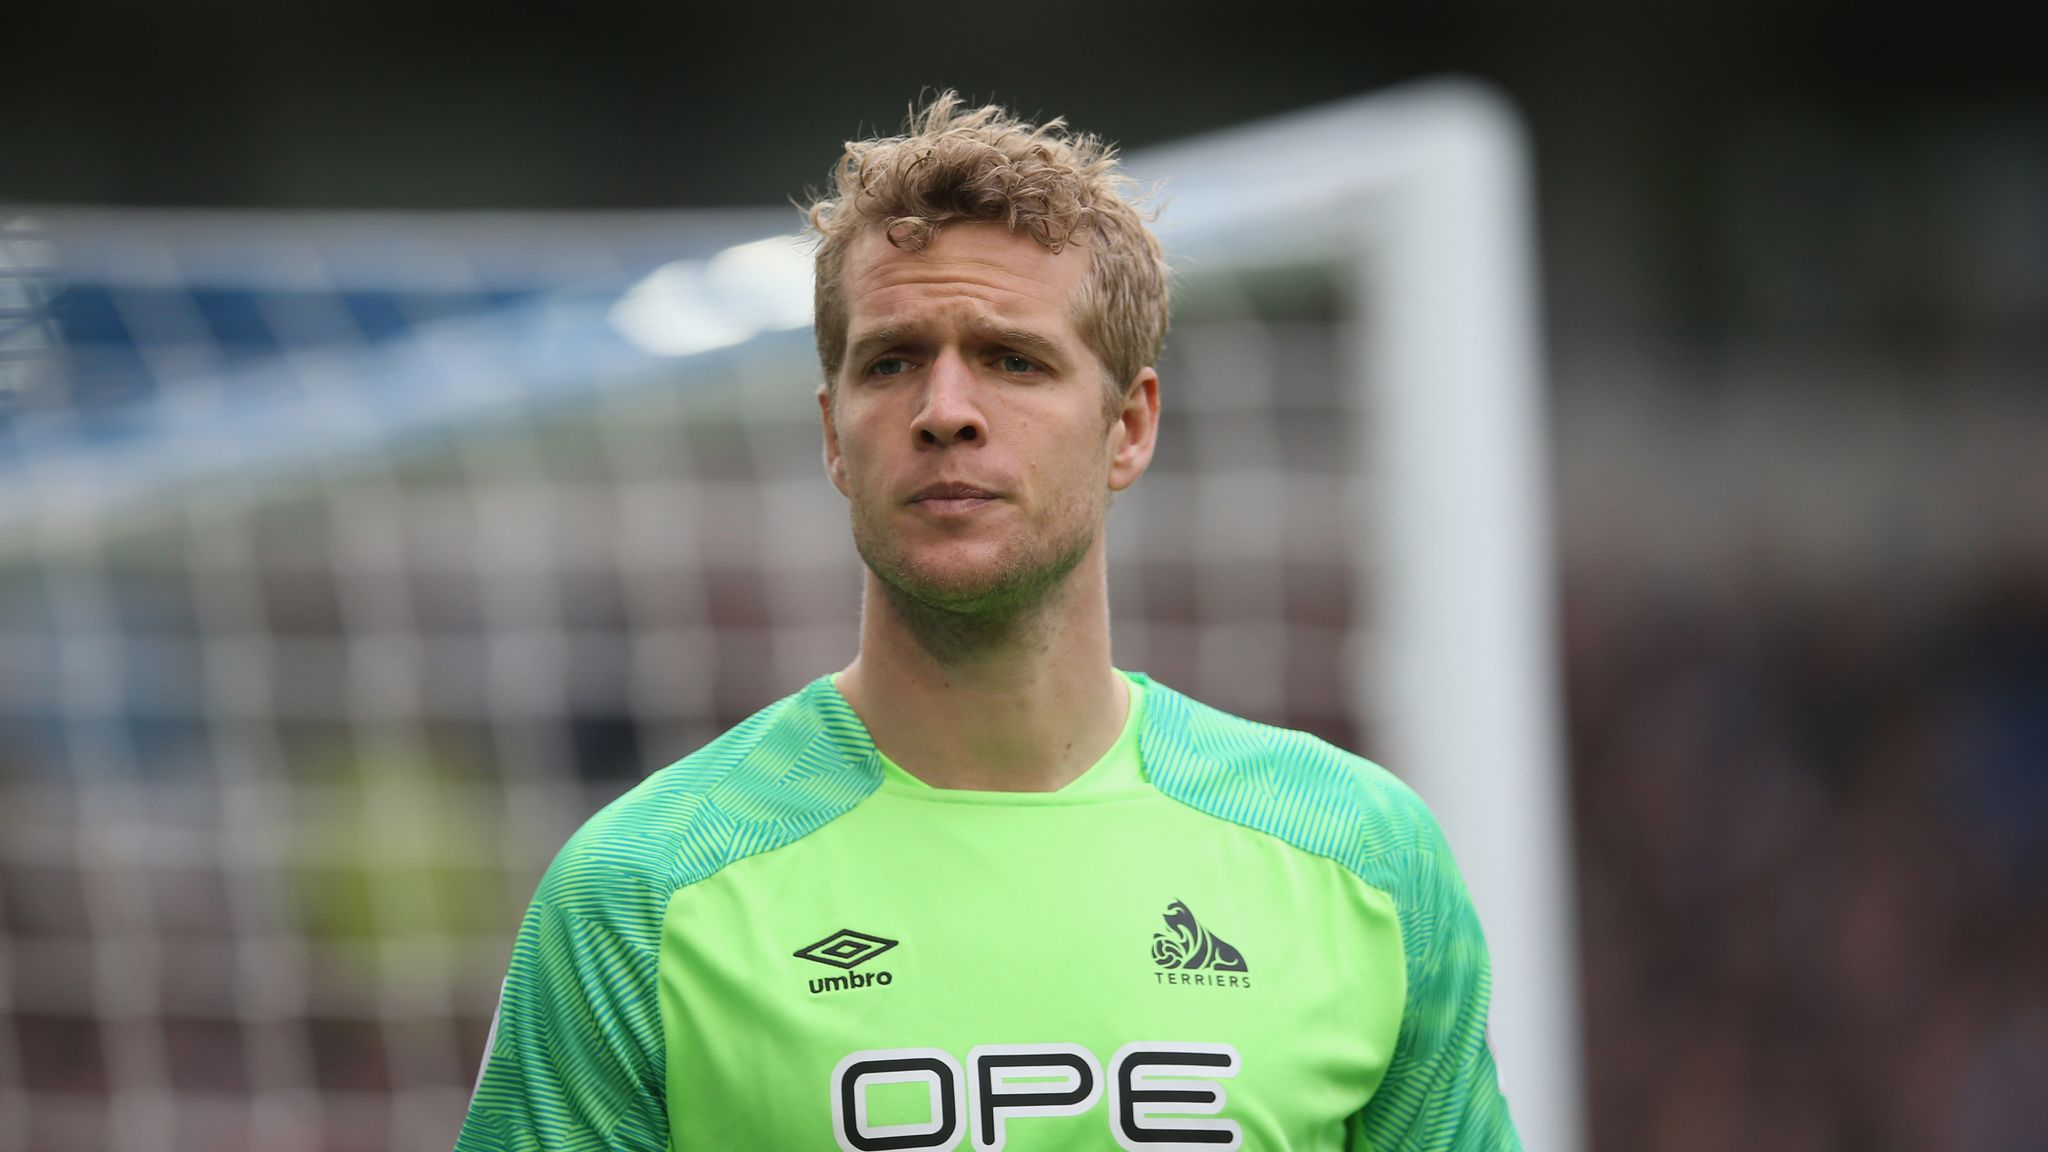 Jonas Venlo Goalkeeper Jonas Lossl Confirms Huddersfield Exit Football News